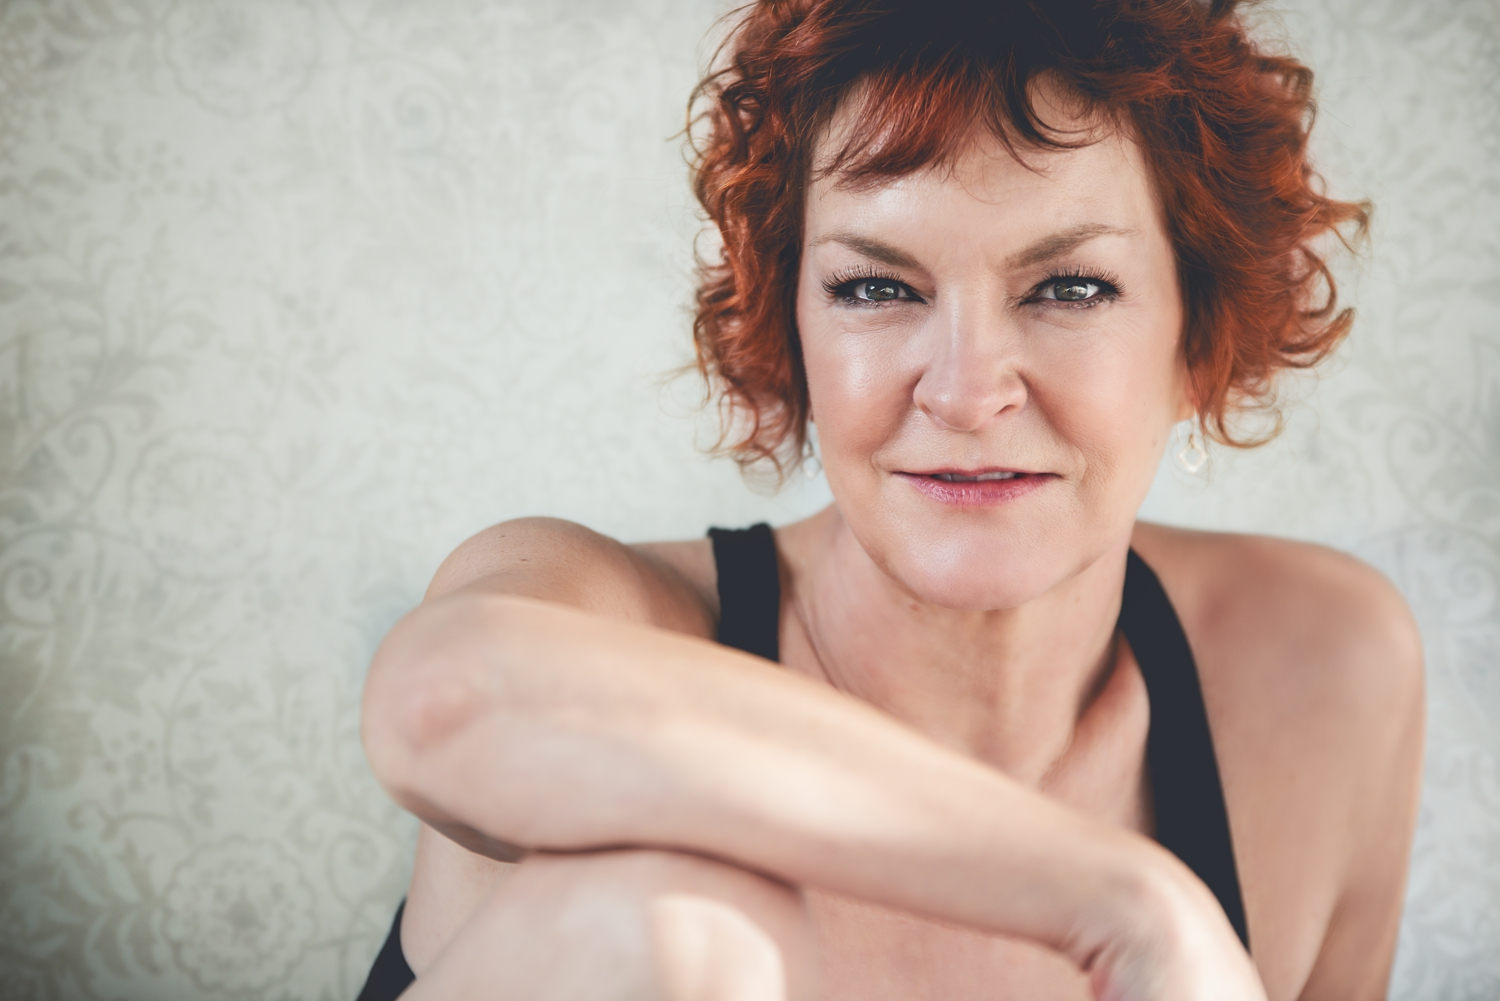 Boudoir portrait of woman over fifty years old with red hair